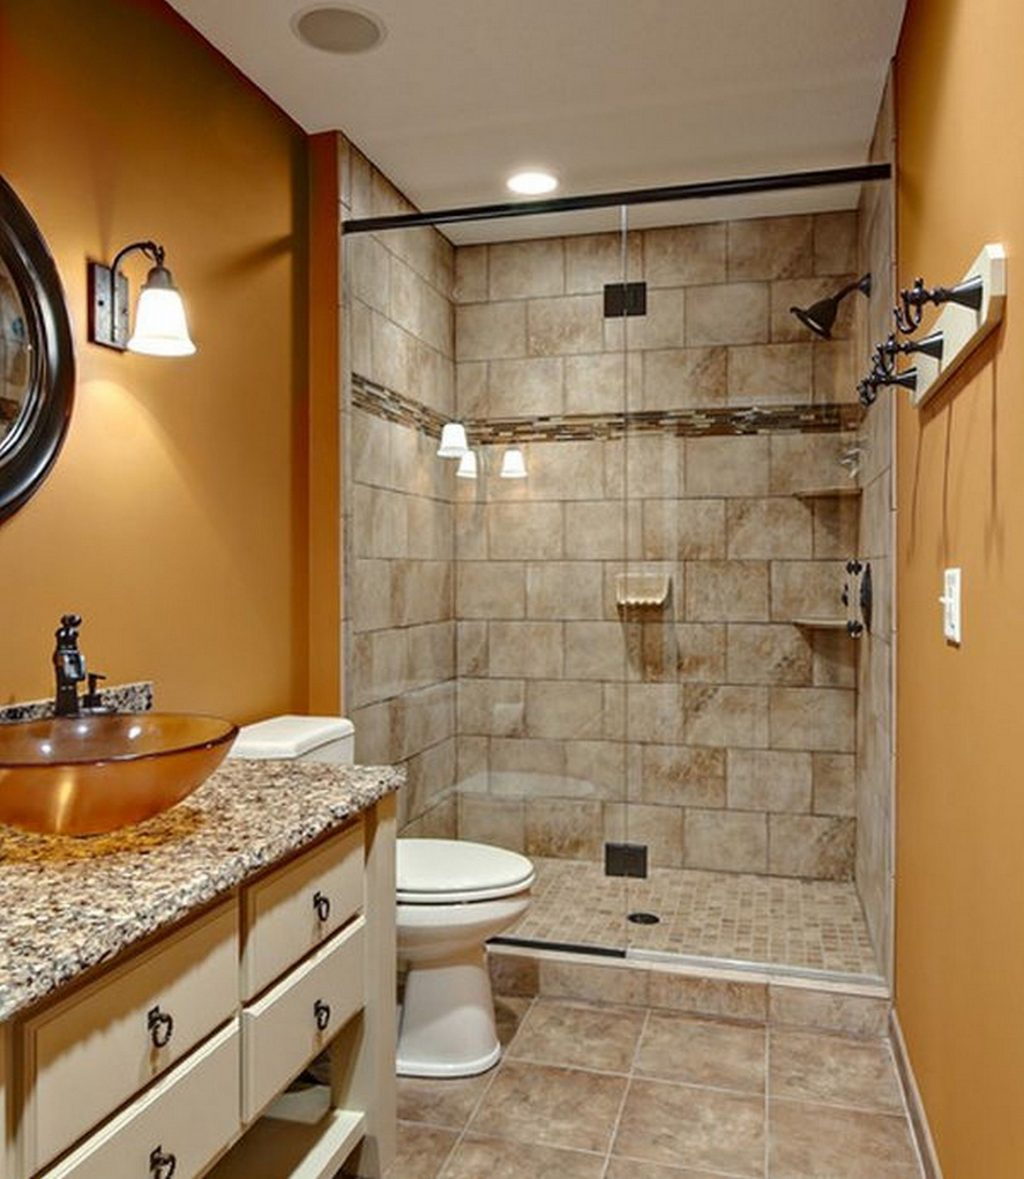 Modern Bathroom Design Ideas With Walk In Shower Small Bathroom